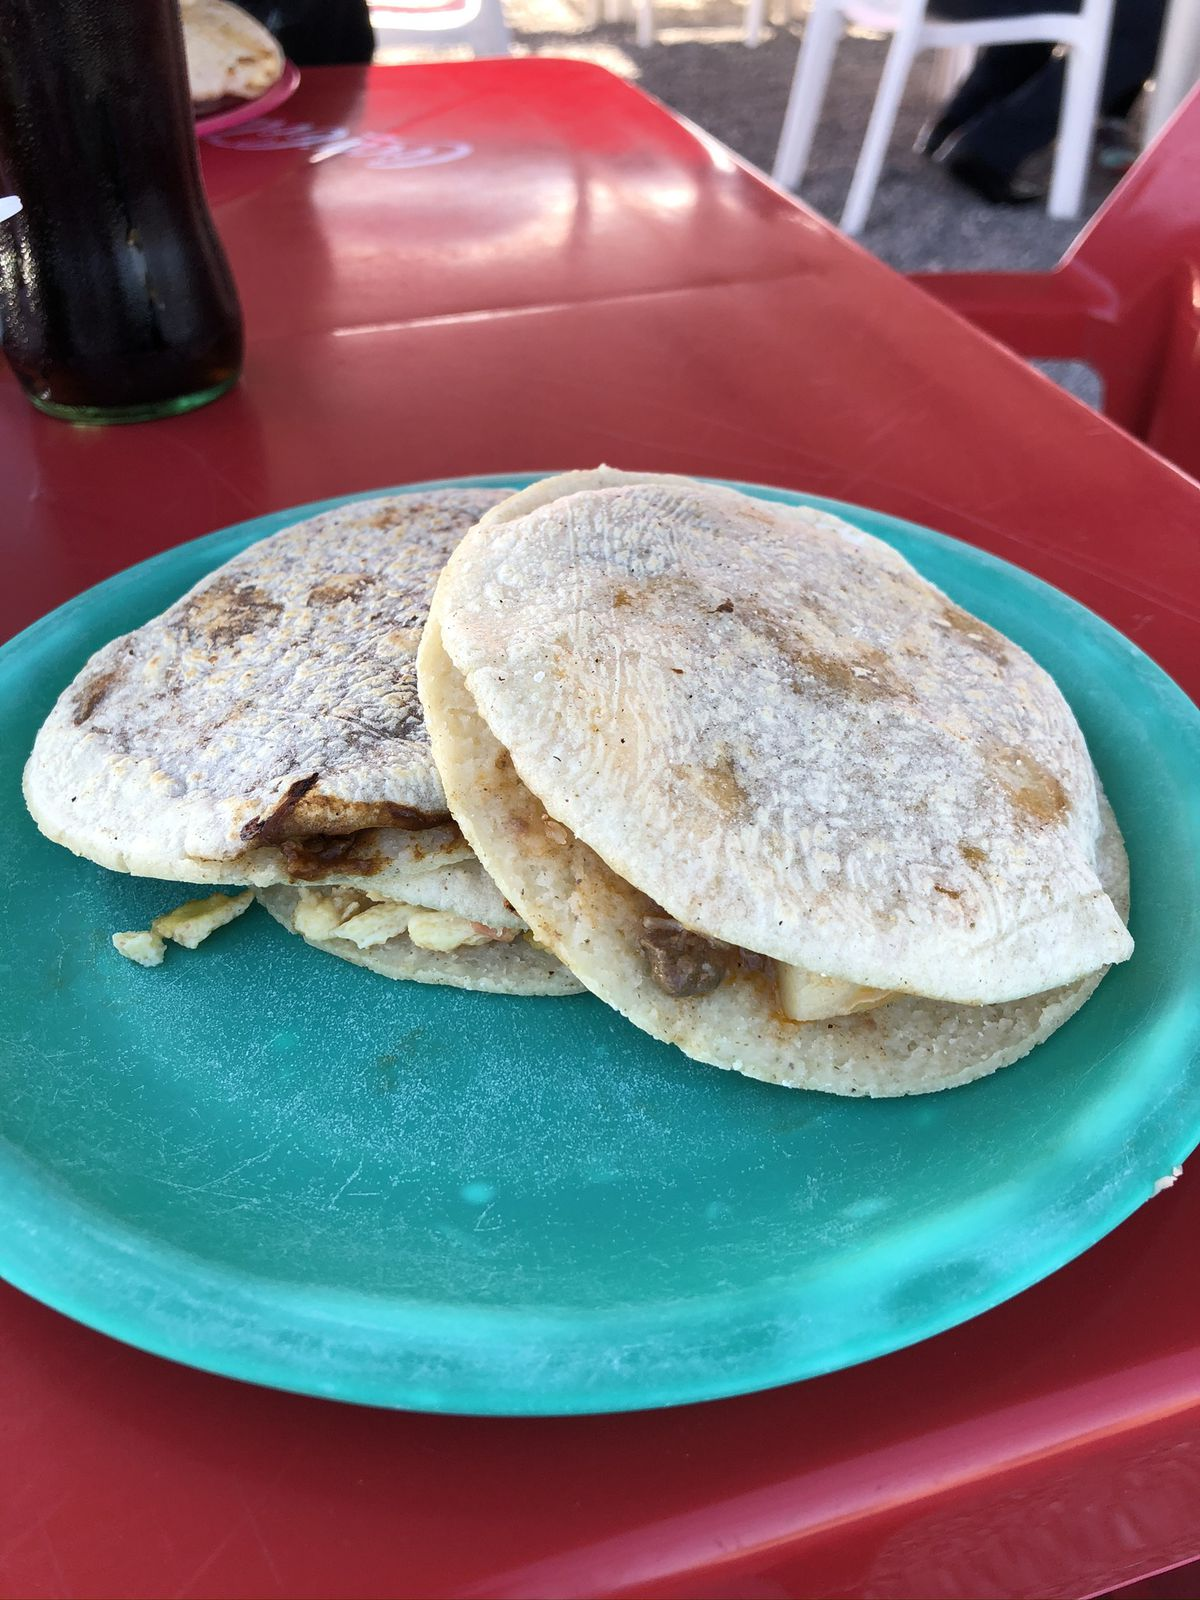 Gorditas from Gorditas Fanny. A tortilla slit open to form a picket and stuffed with meats and/or vegetables.